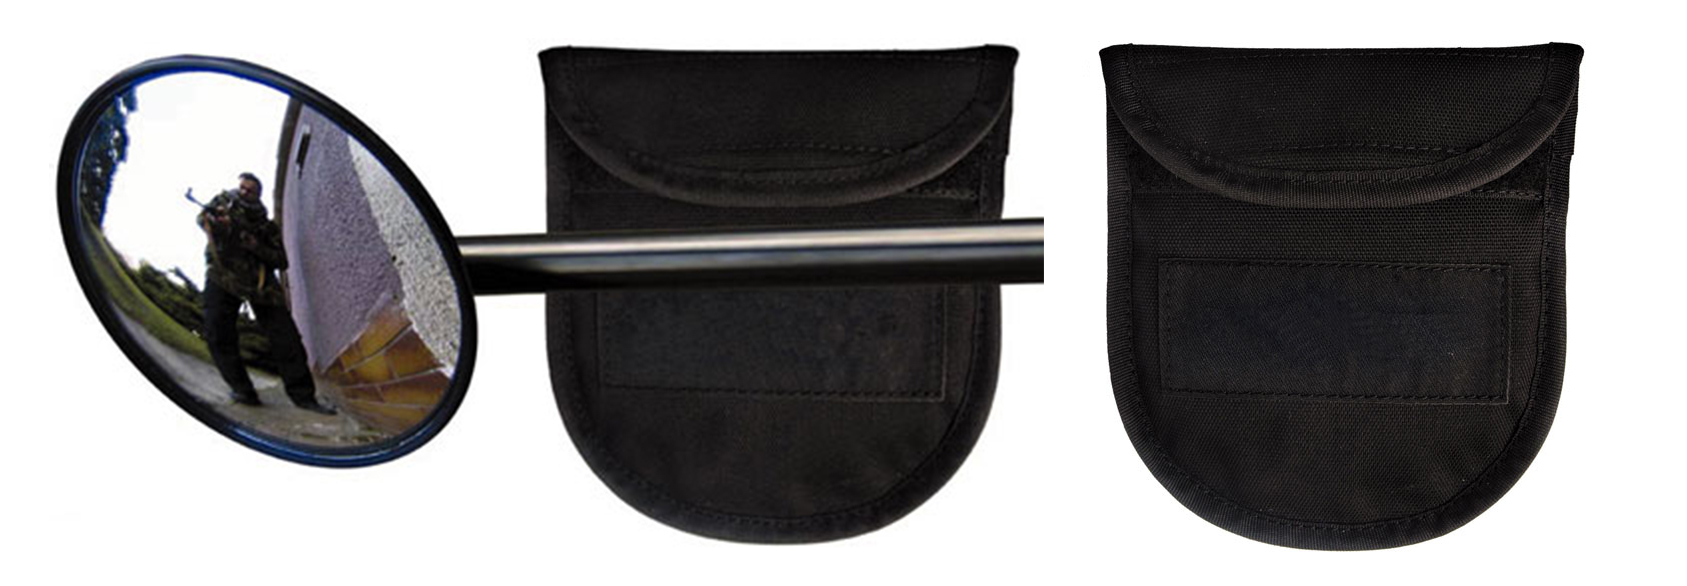 "376 • Mirror – Baton End – Large with Pouch (3.66"") Image"